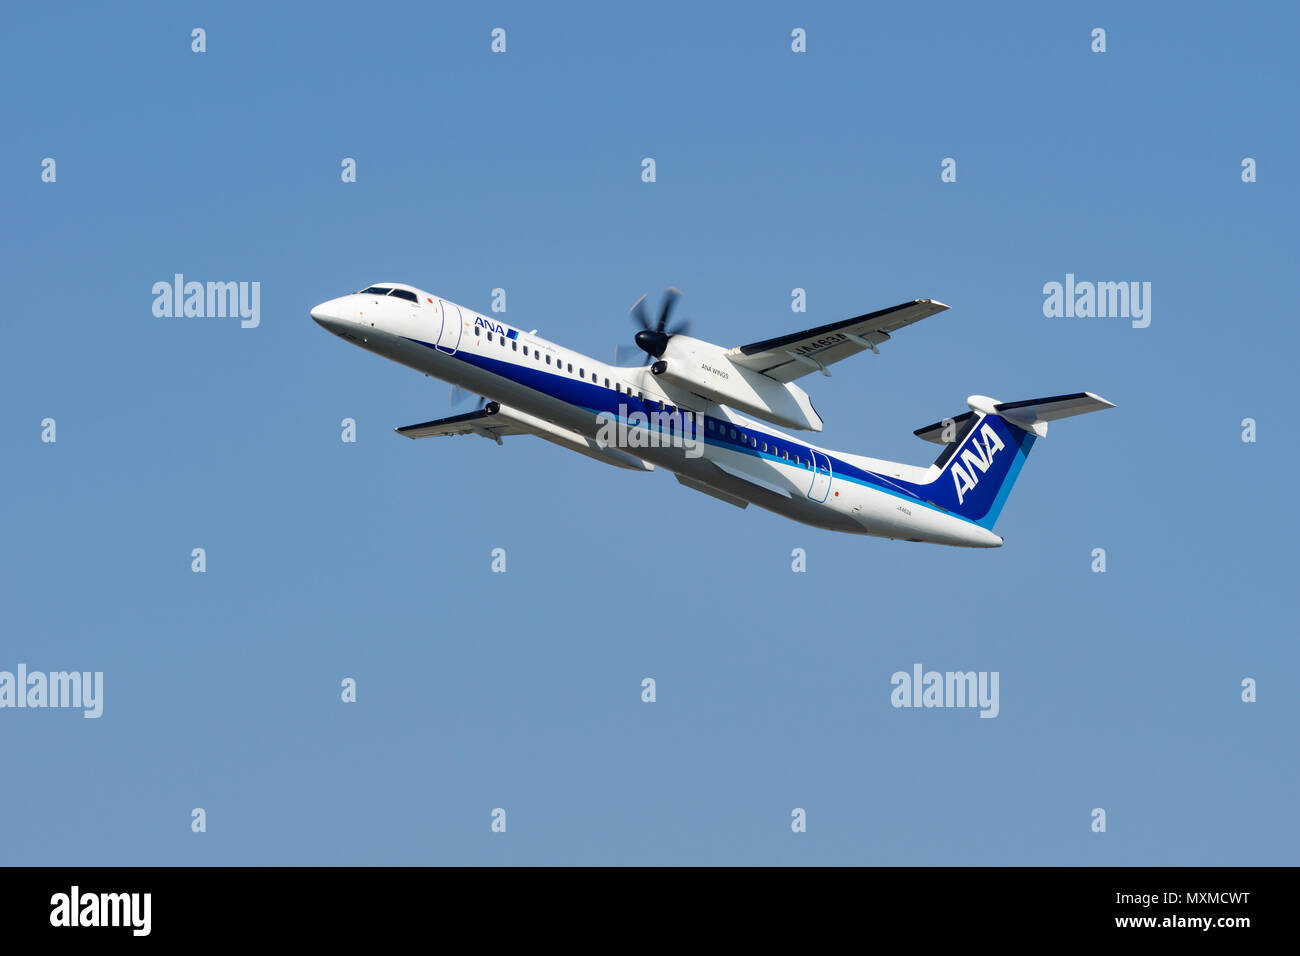 OSAKA, JAPAN - APR. 28, 2018: Bombardier DHC-8-400 Dash 8 taking off from the Itami International Airport in Osaka, Japan. - Stock Image